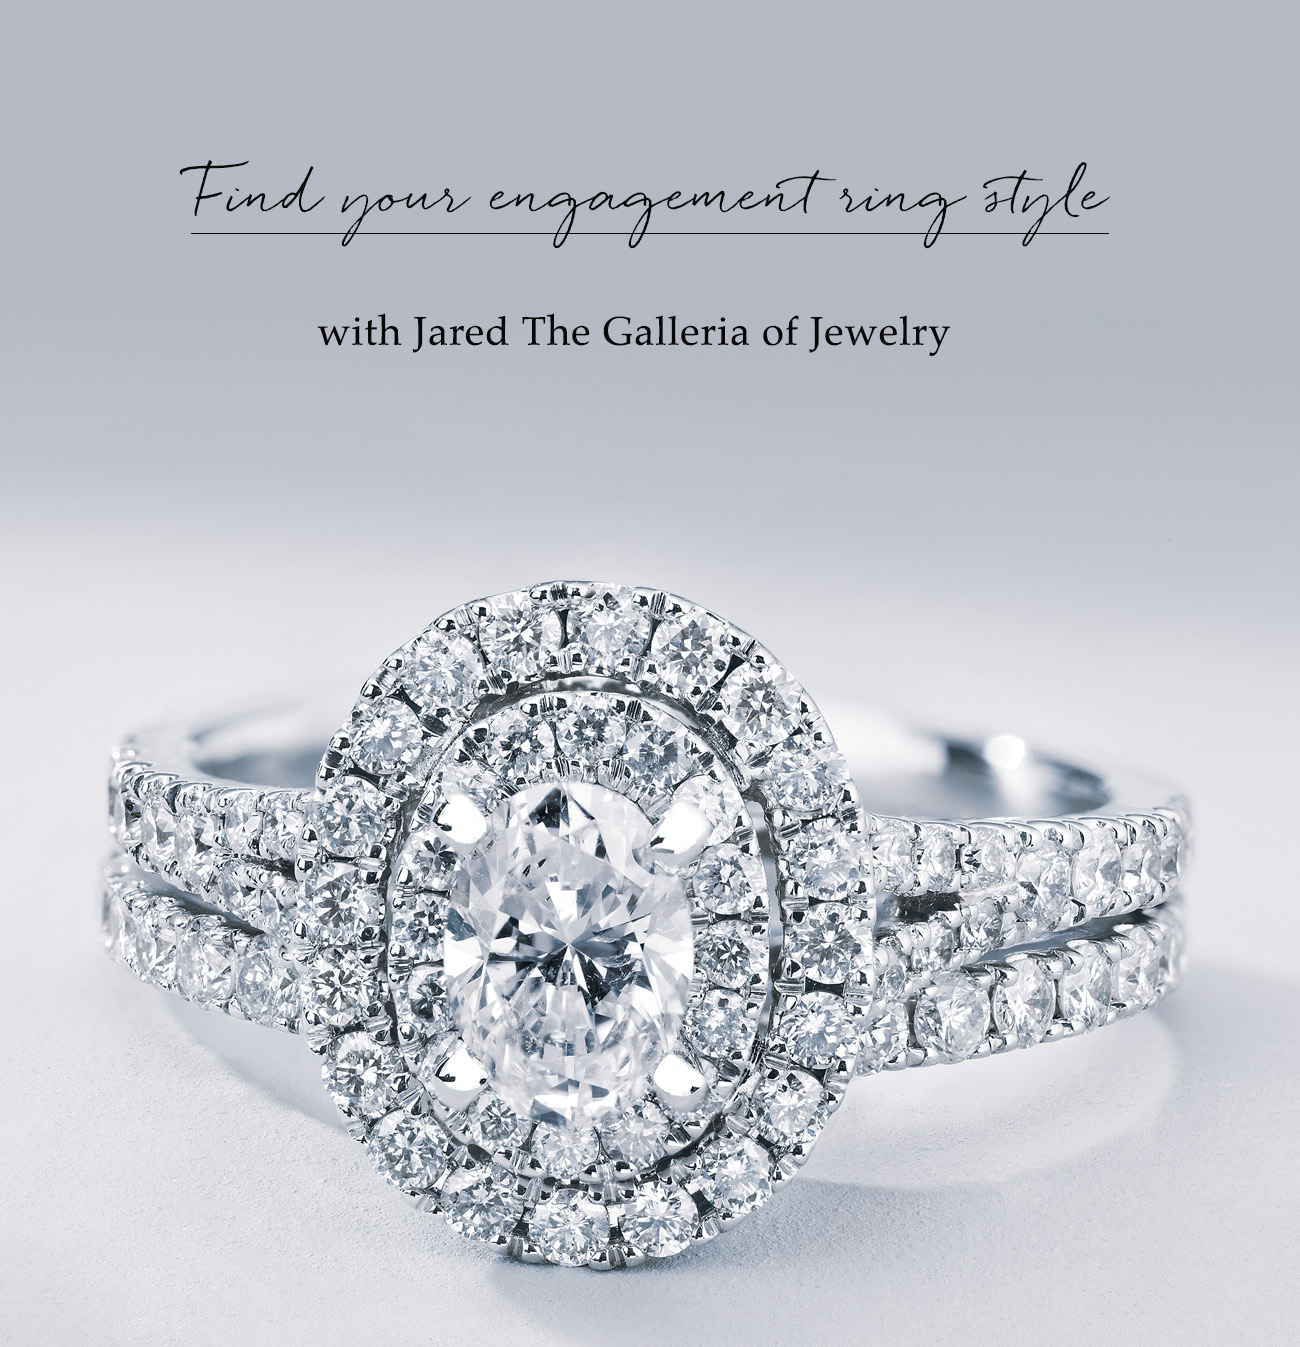 find your engagement ring style with jared jareds wedding rings Find Your Engagement Ring Style with Jared